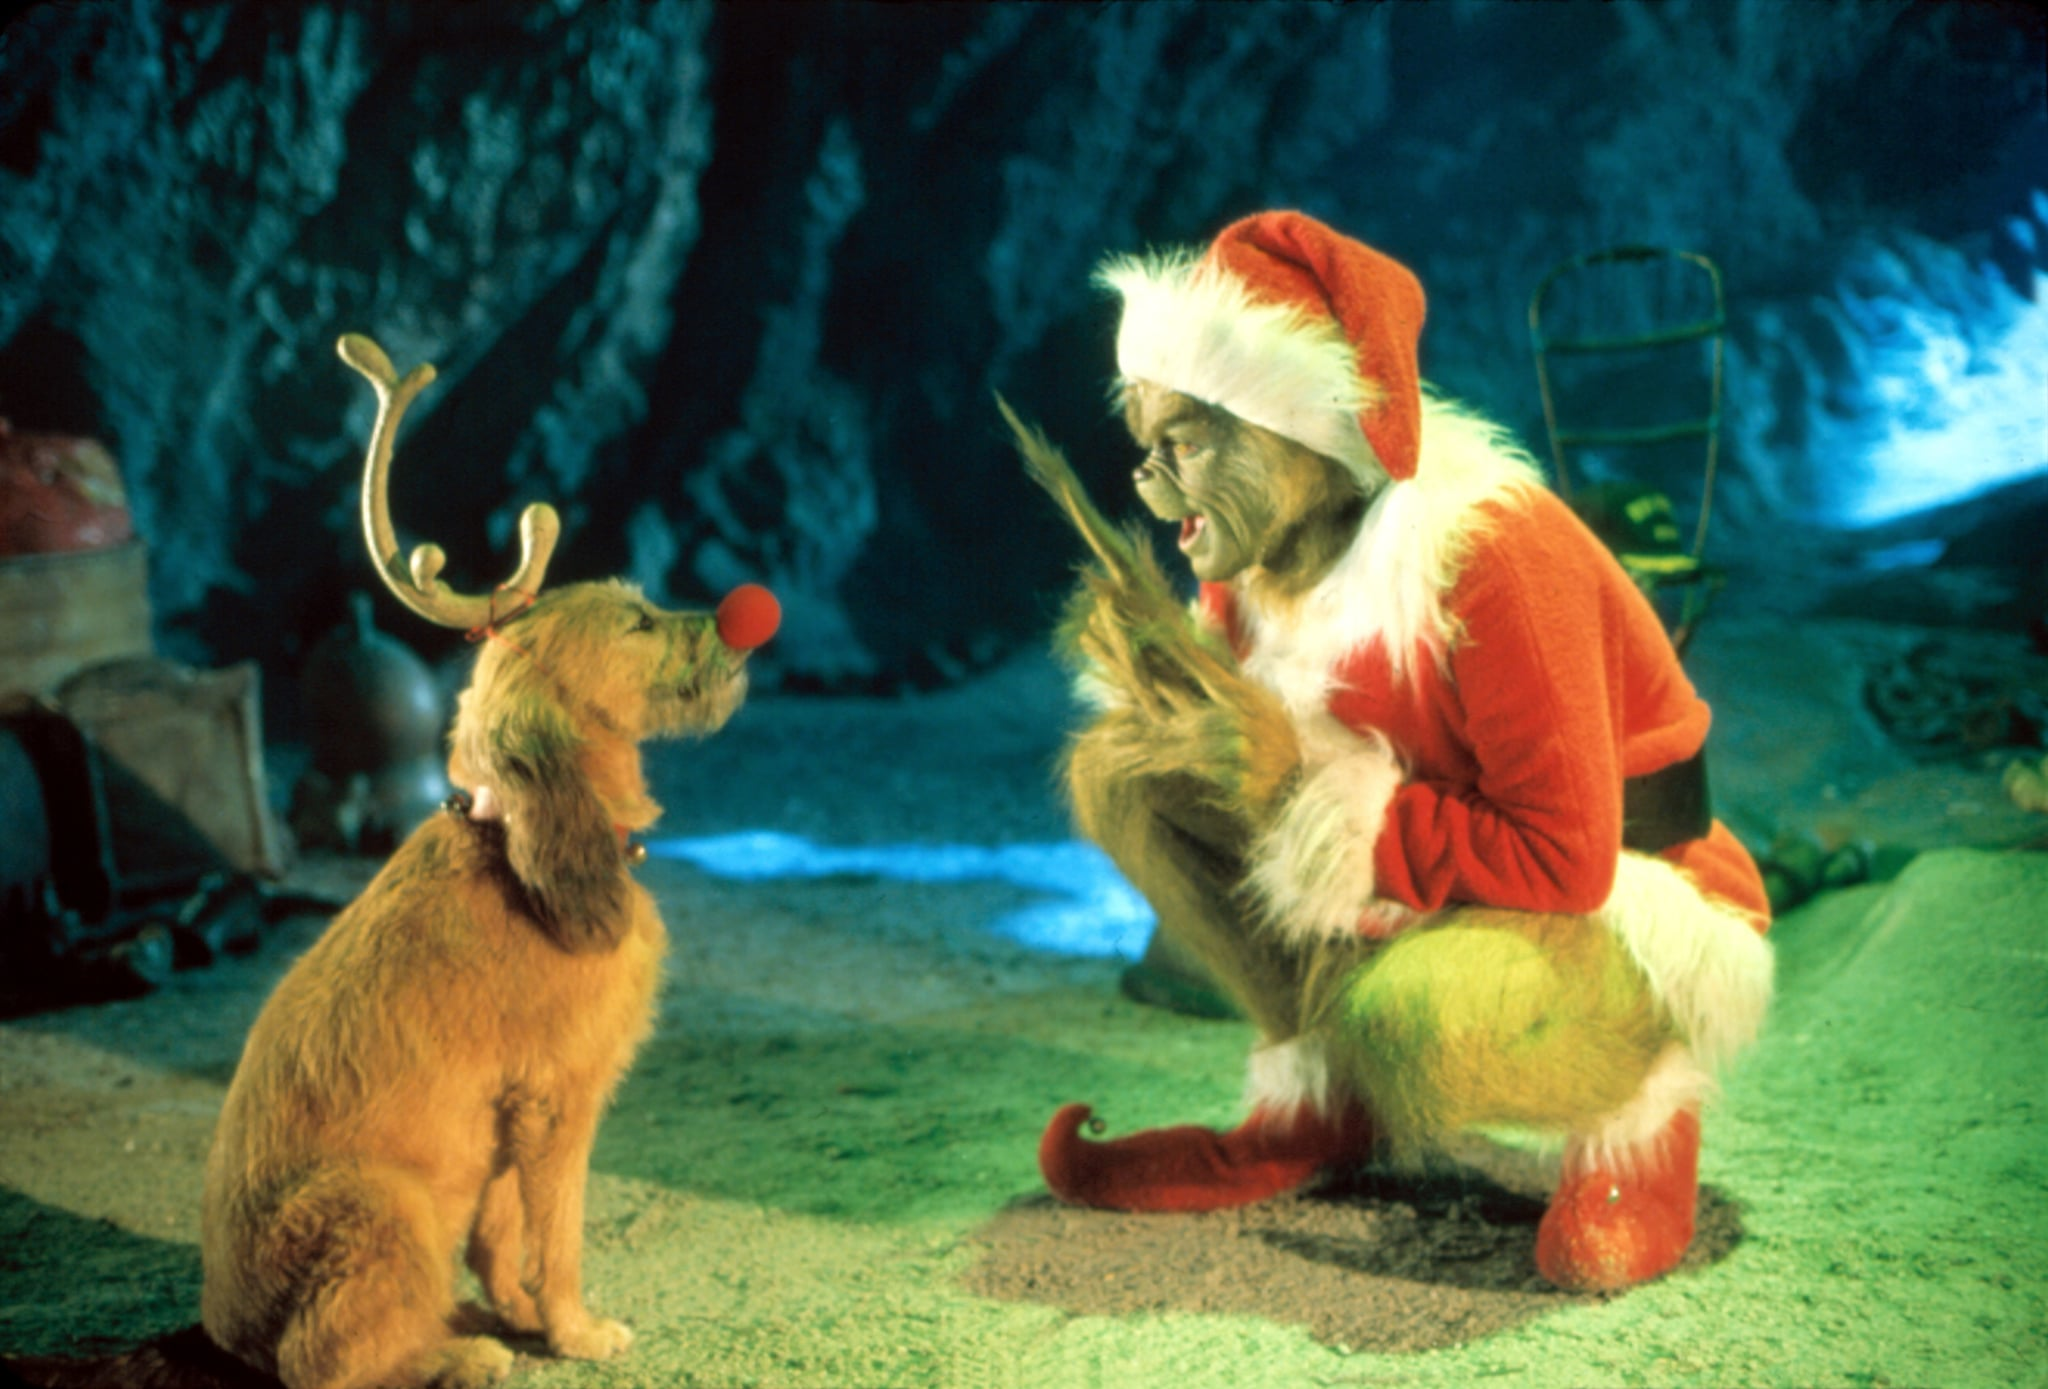 How The Grinch Stole Christmas Movie 2000.Dr Seuss How The Grinch Stole Christmas 2000 Jingle